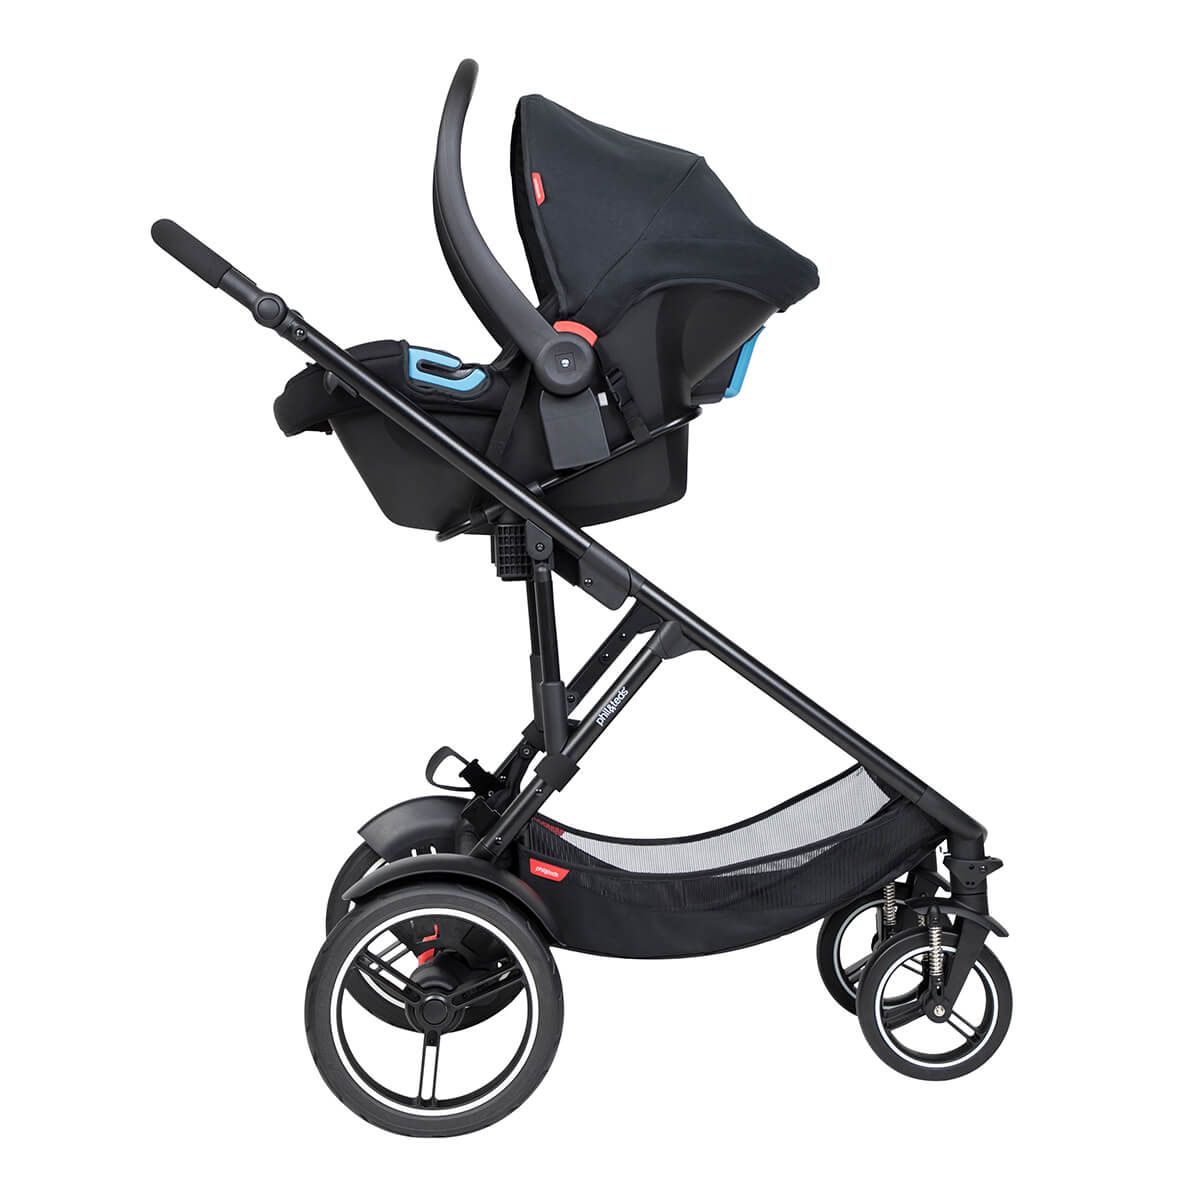 https://cdn.accentuate.io/4546158821481/19119322529897/philteds-voyager-buggy-with-travel-system-in-parent-facing-mode-v1625778595287.jpg?1200x1200